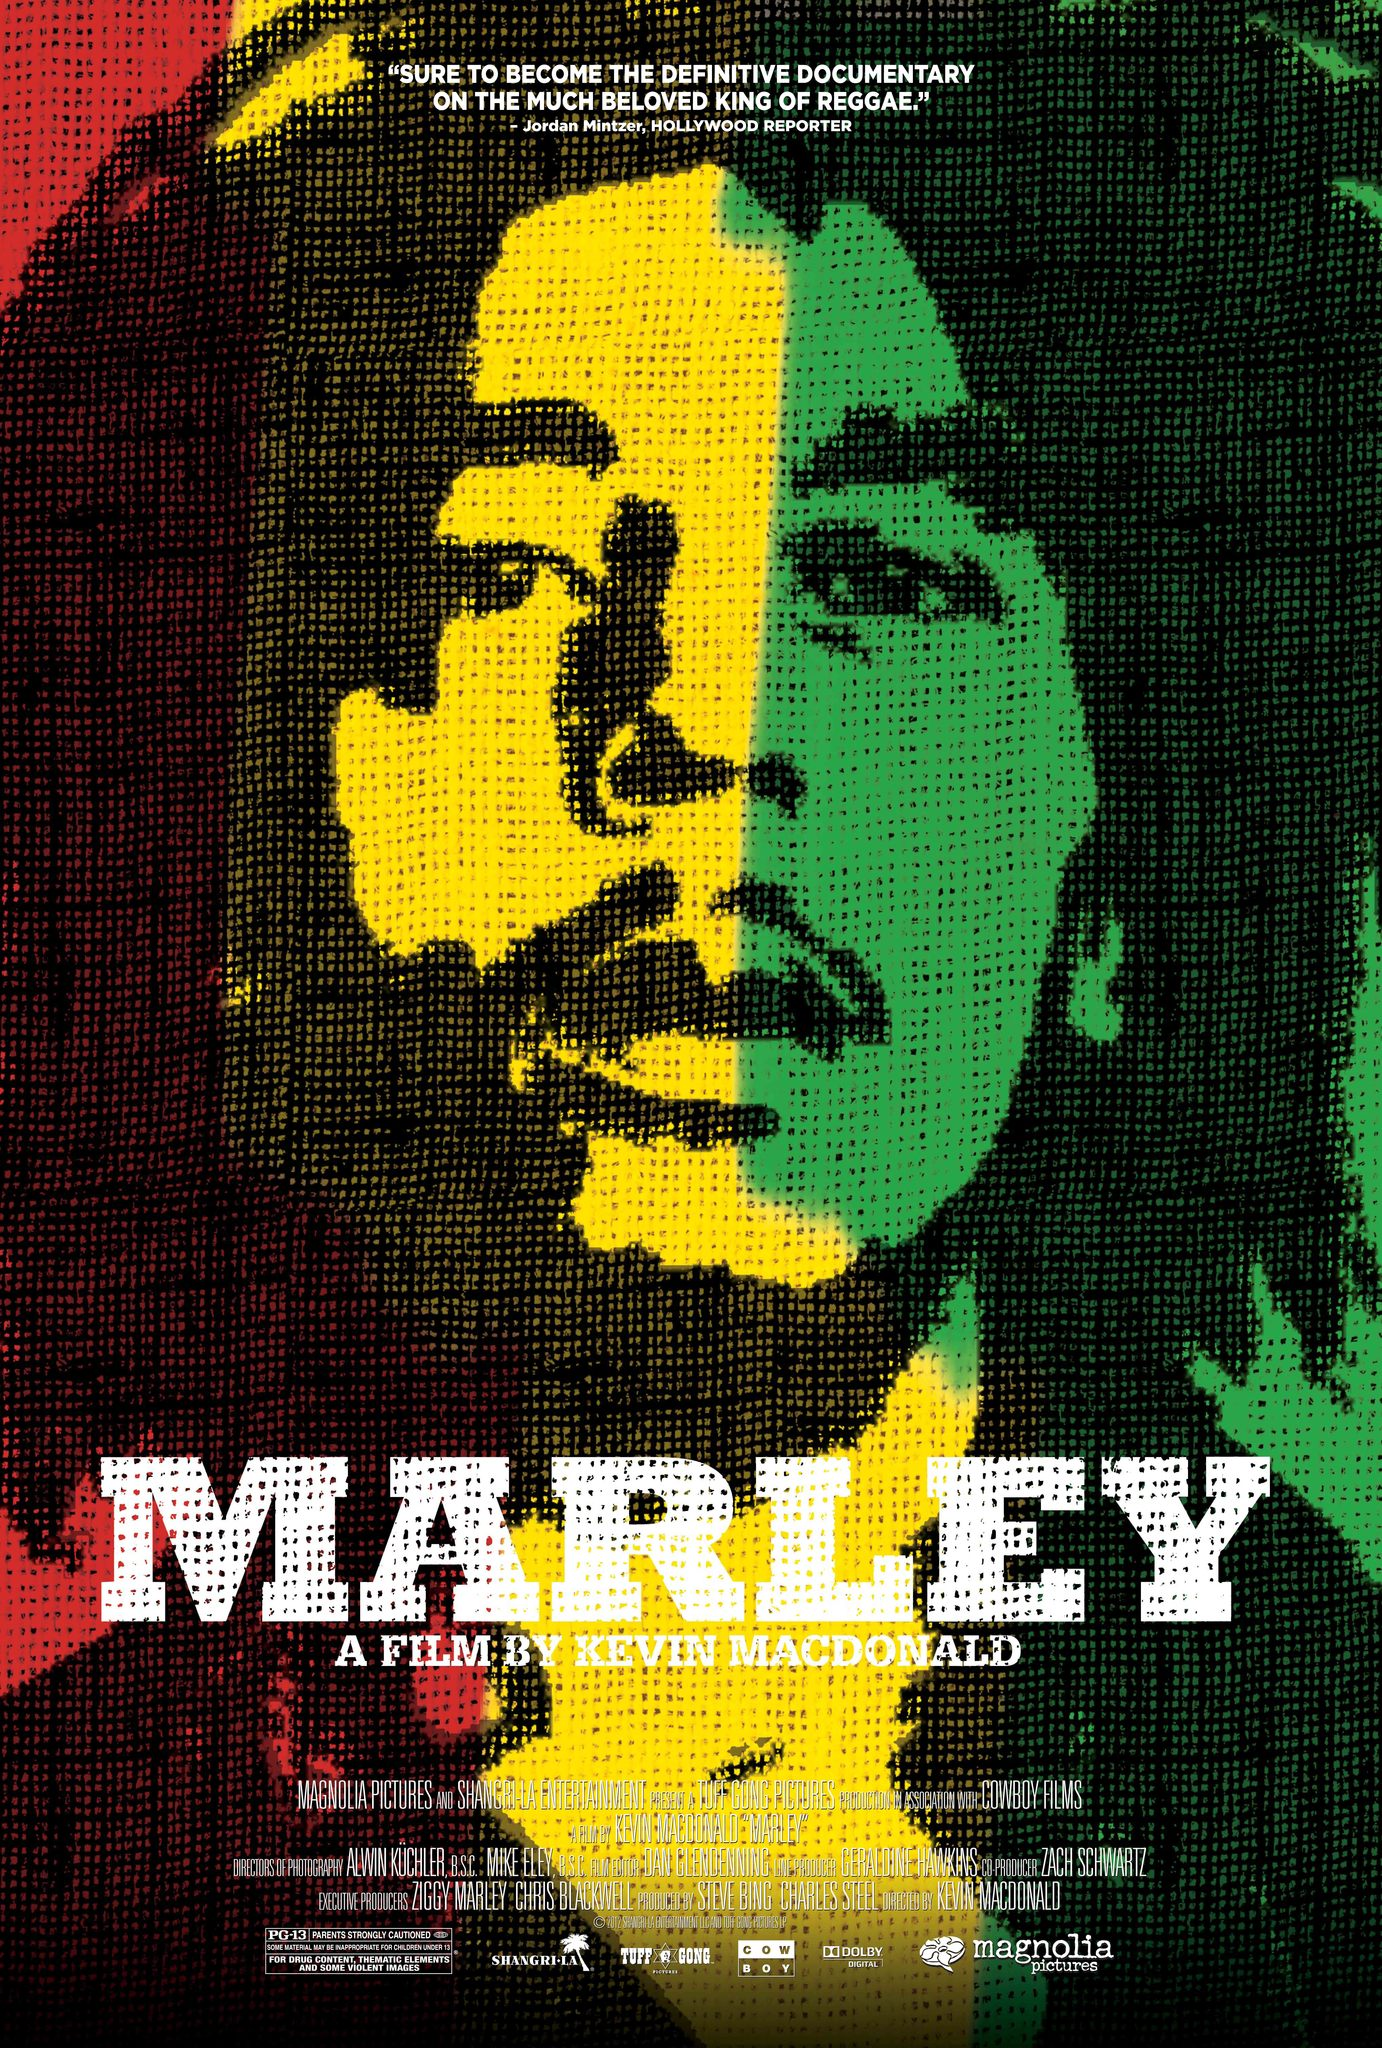 bob marley biography essay bob marley biography imdb